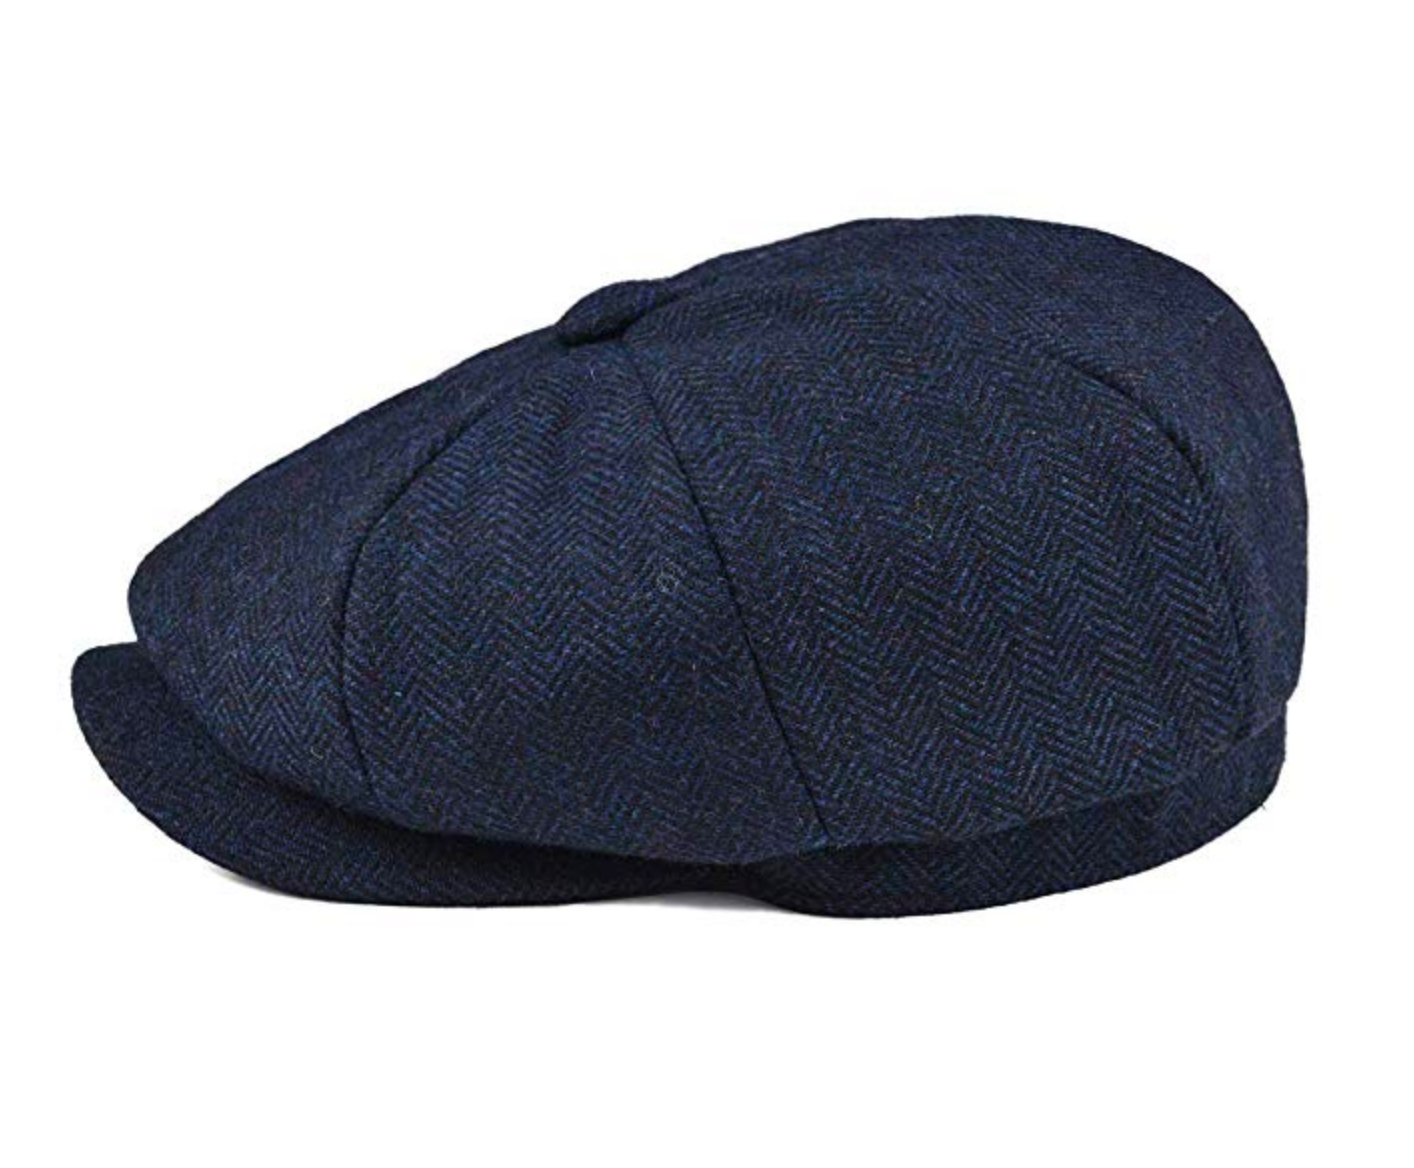 MM Flat Cap Navy